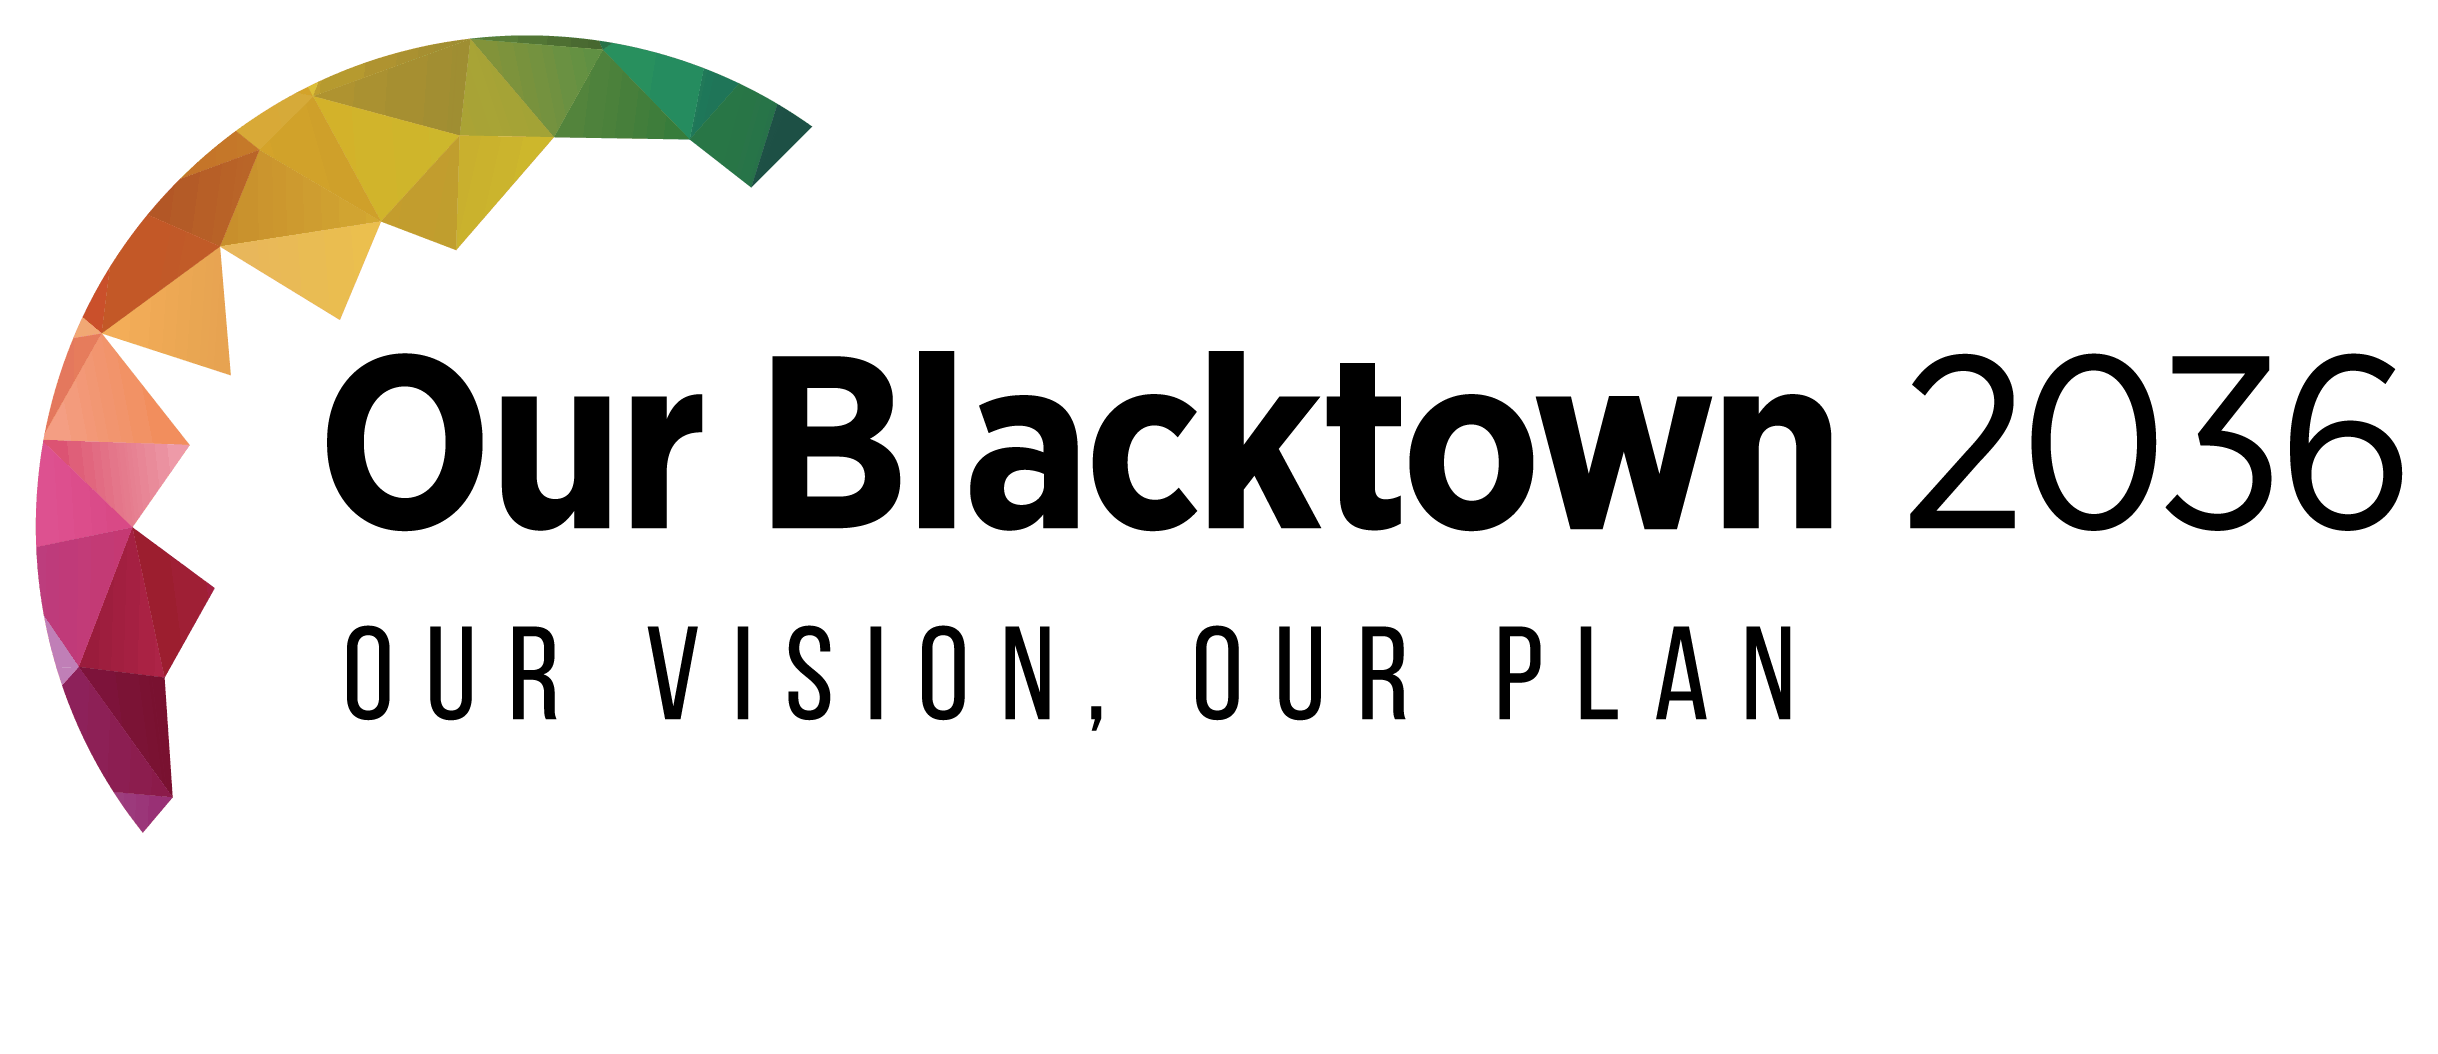 Our Blacktown 2036 – our transformational plans and budget